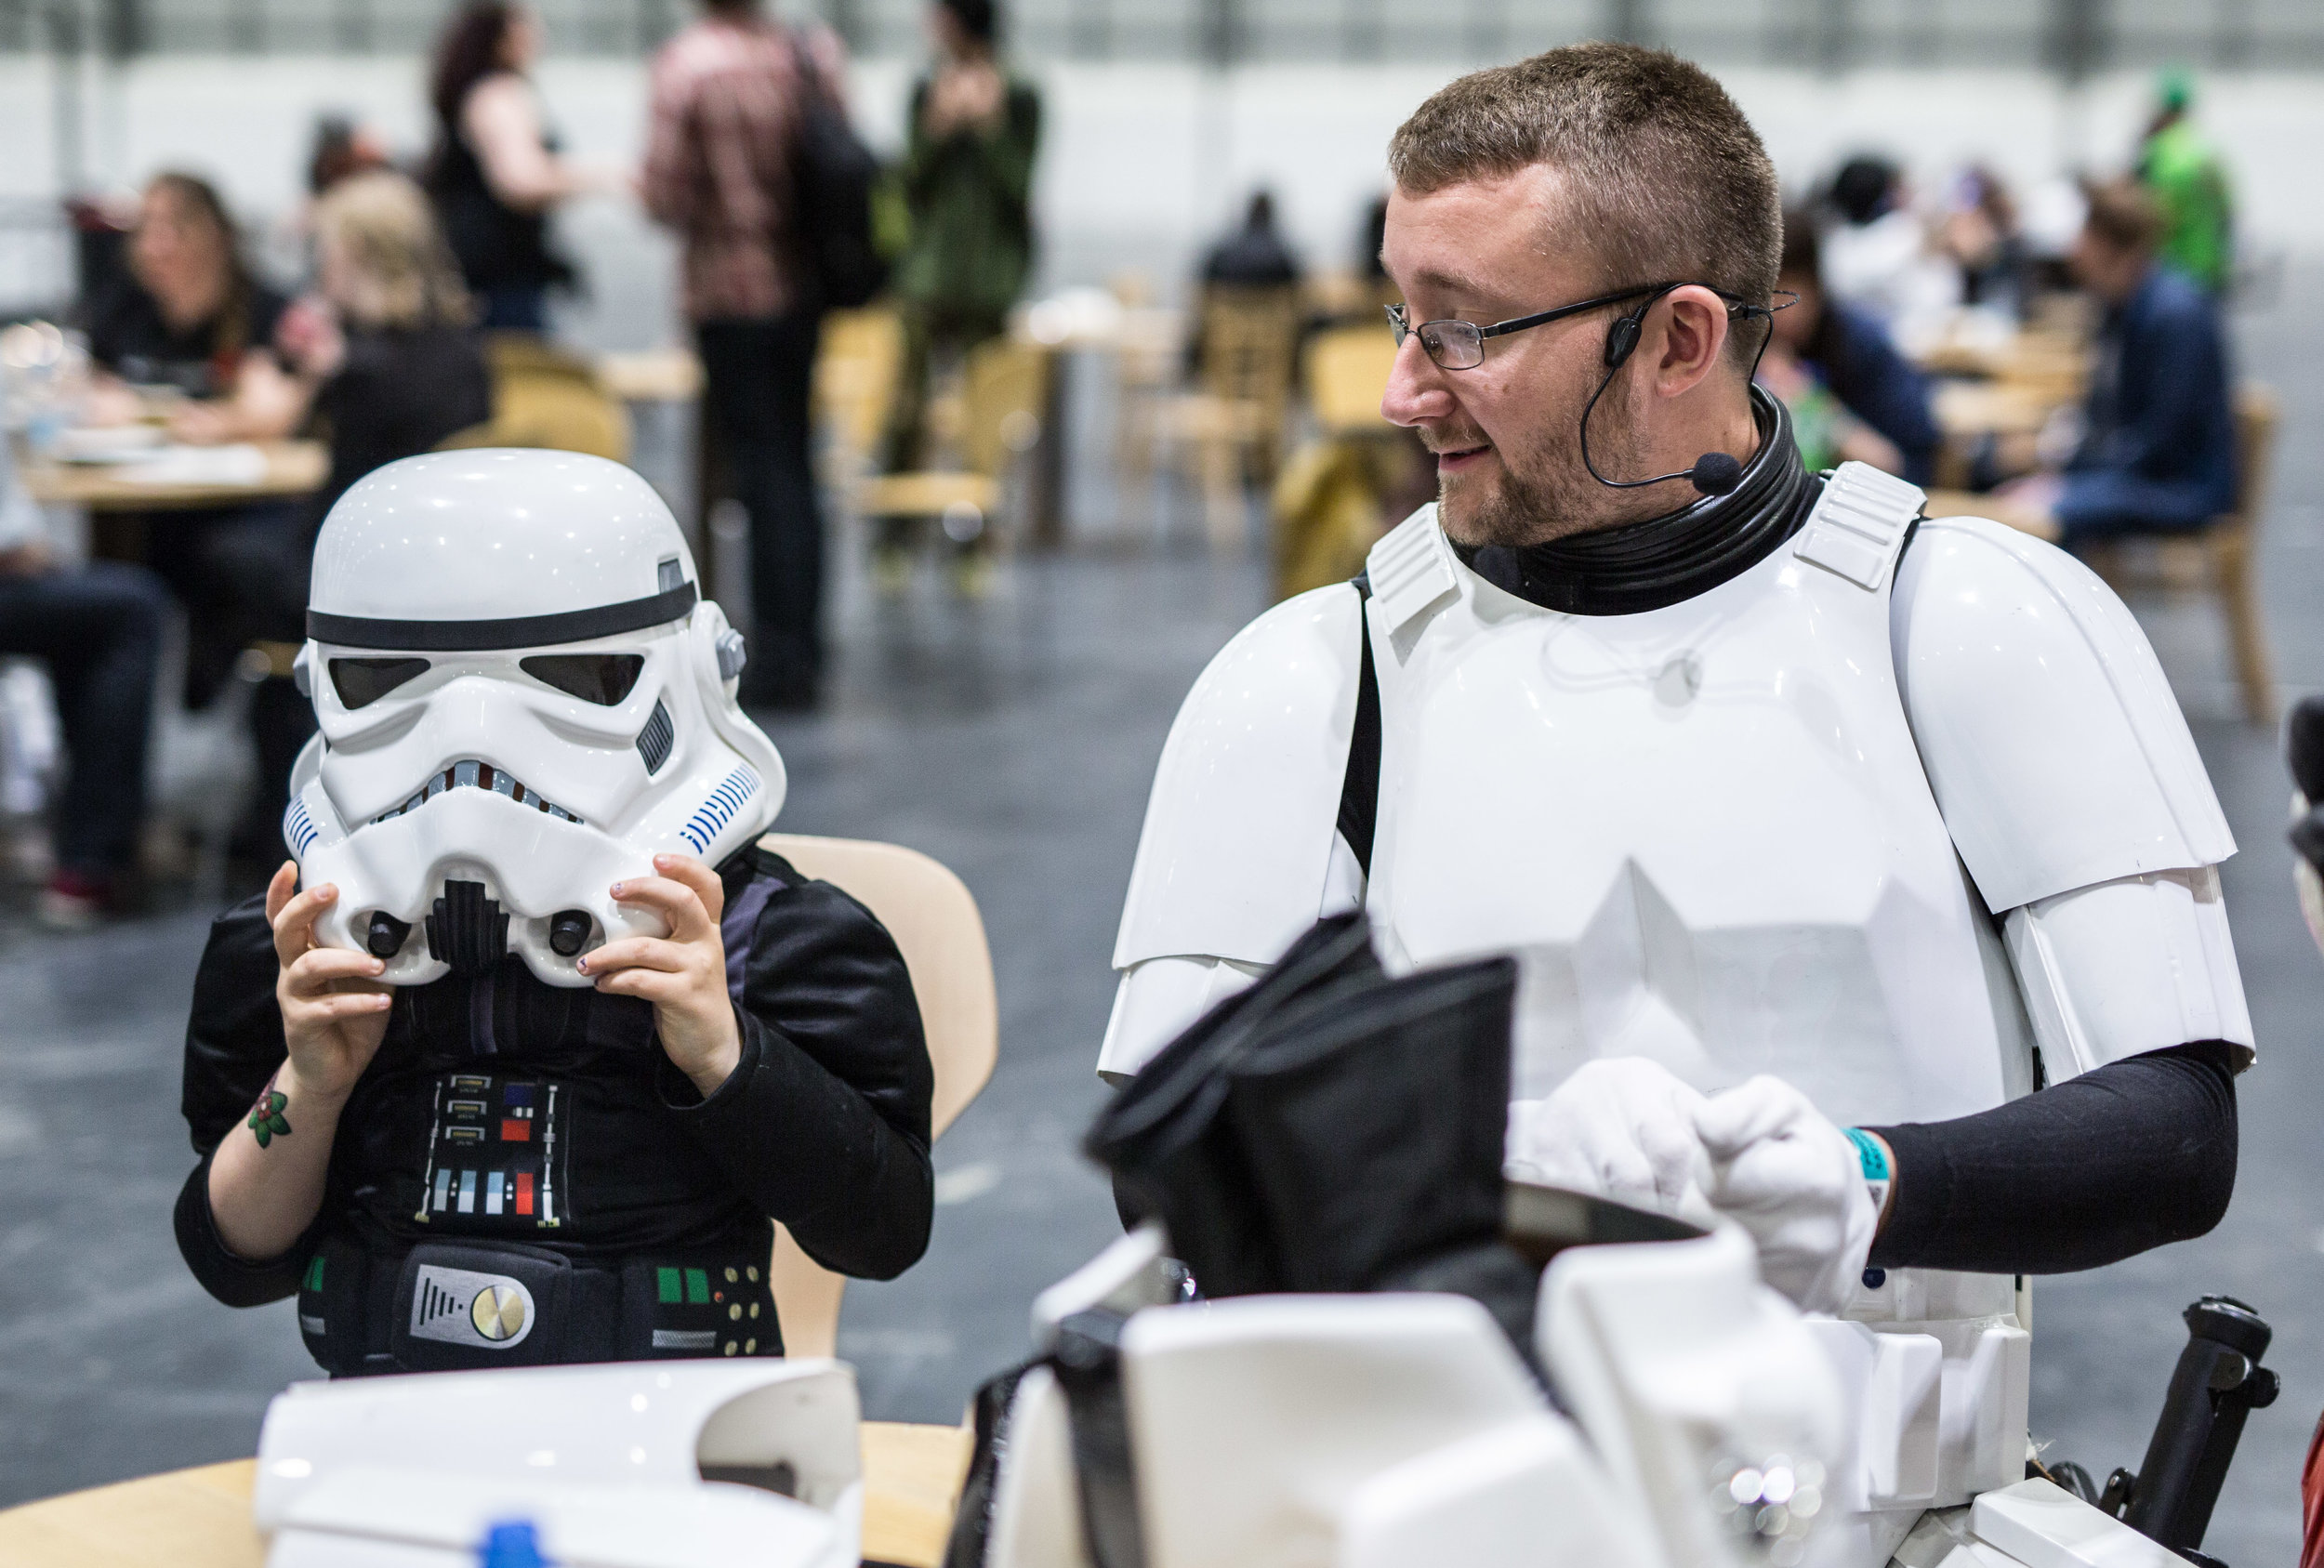 A child in a Darth Vader (Star Wars) outfit tries on a Storm Trooper helmet at the MCM EXPO London Comic Con which is being held at the ExCel Centre between 22-24th May 2015